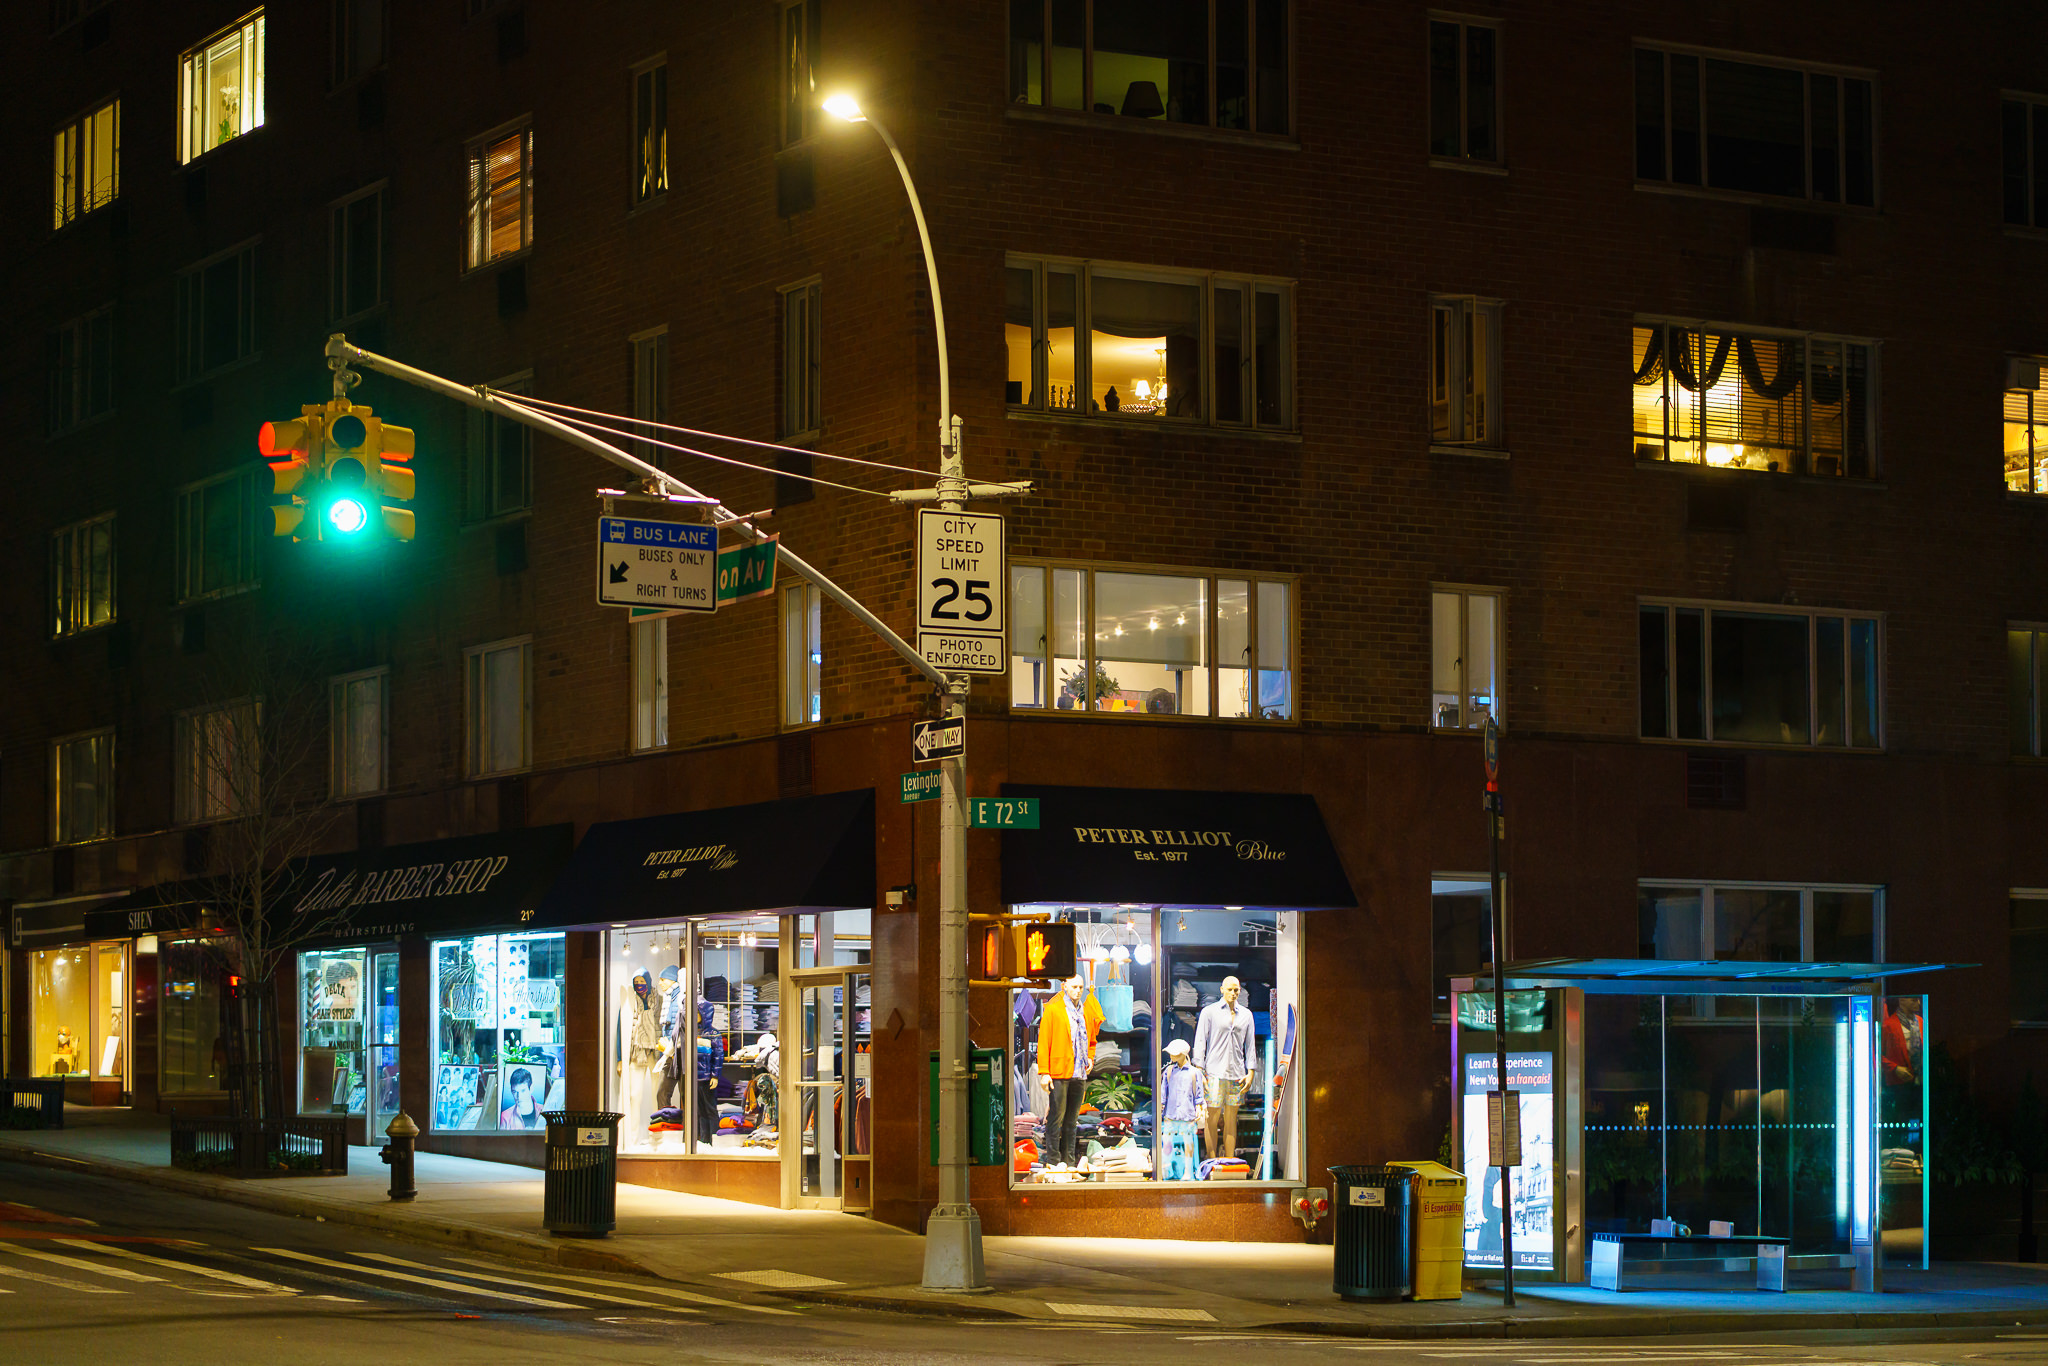 a photo of shops at a new york city intersection at night